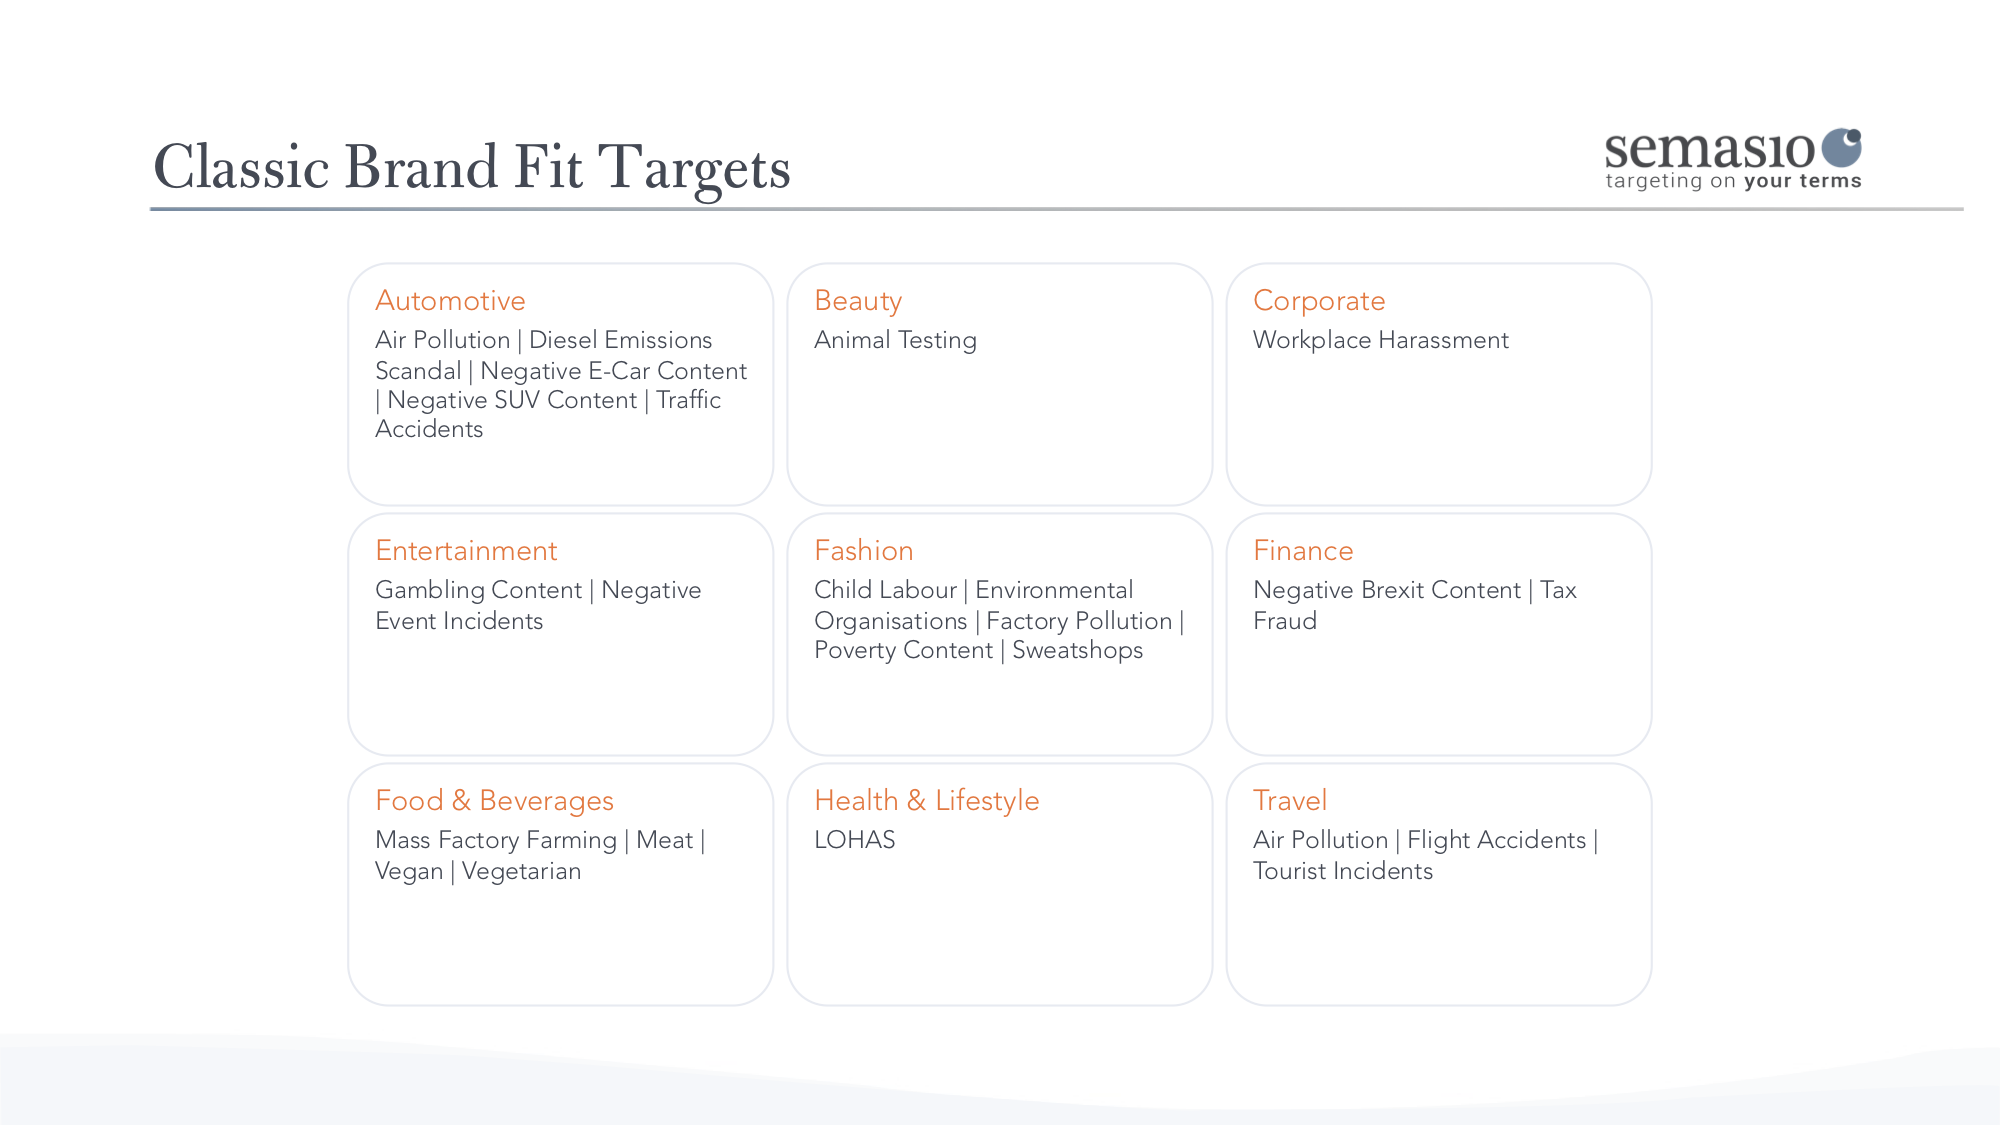 Semasio_One-Pager_Classic Brand Fit Targets_2020-1